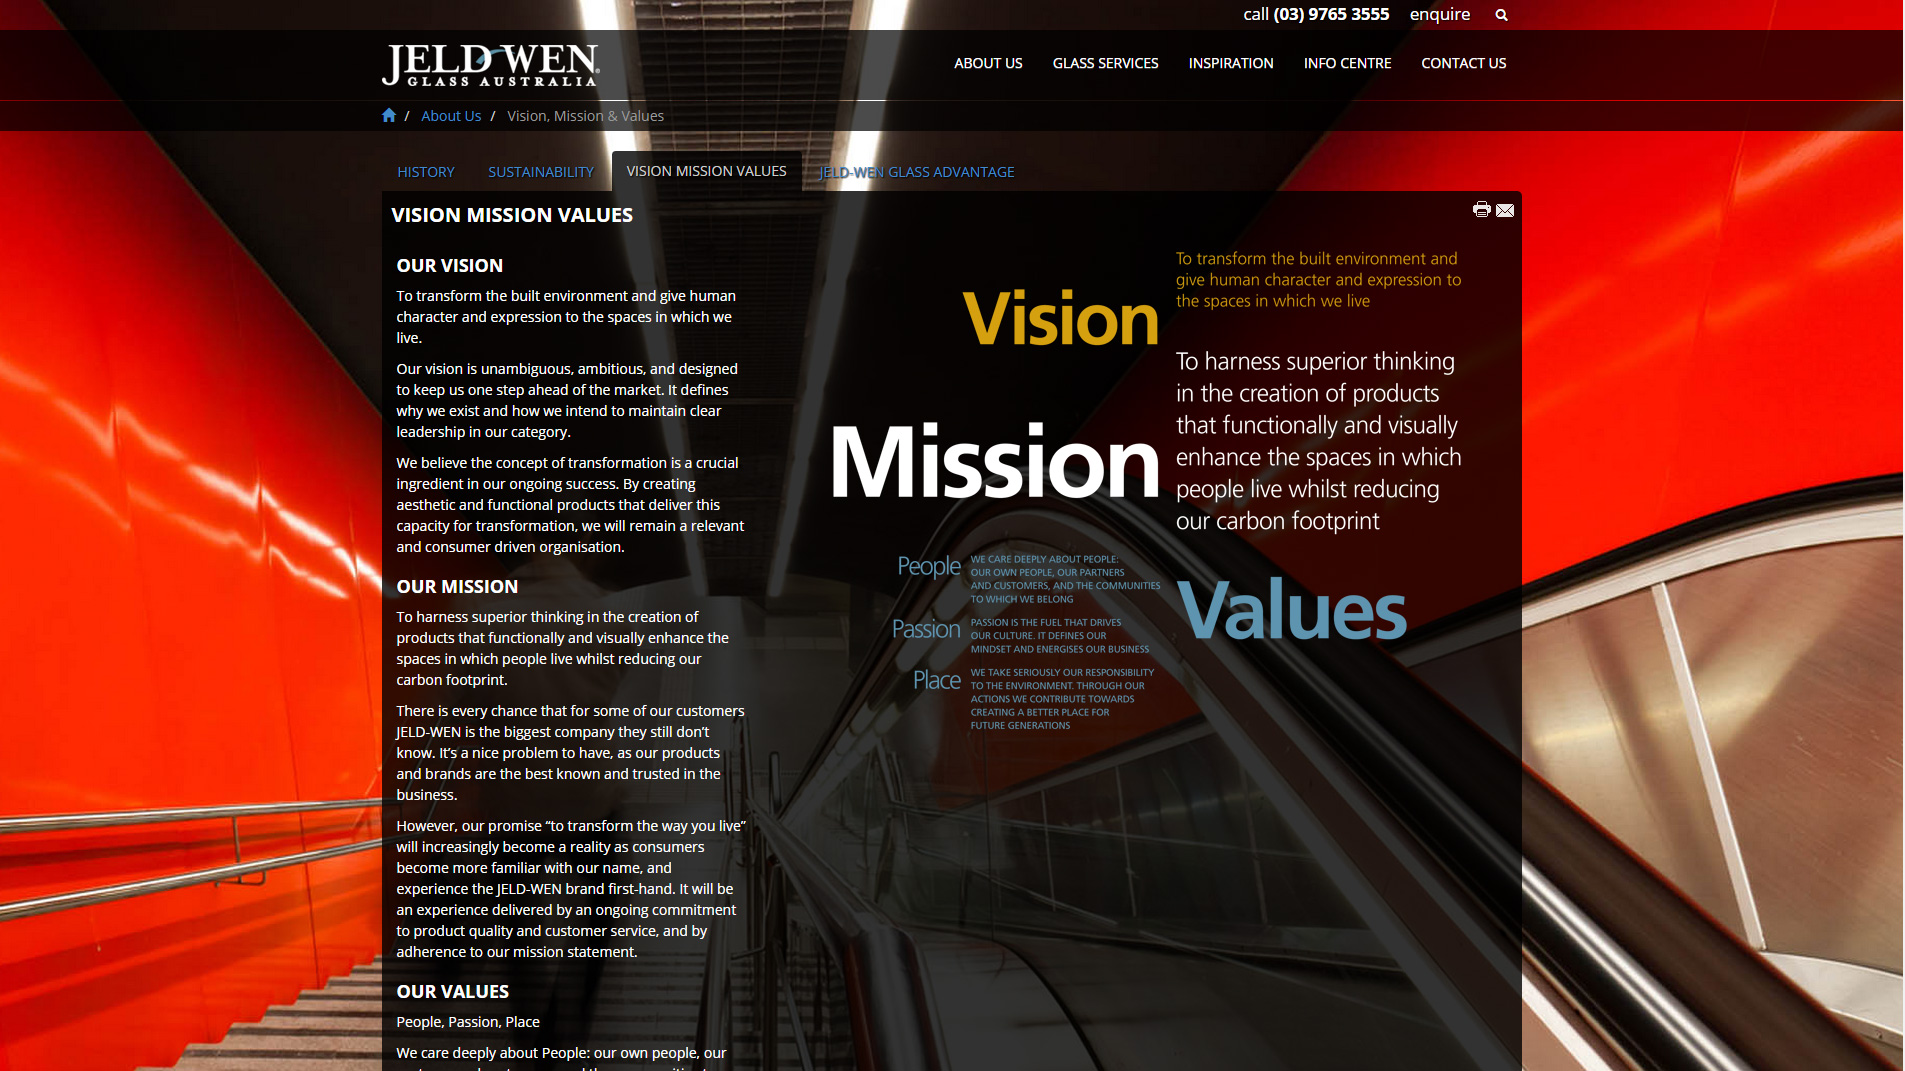 New JELD-WEN Glass Website - Mission Vision and Values